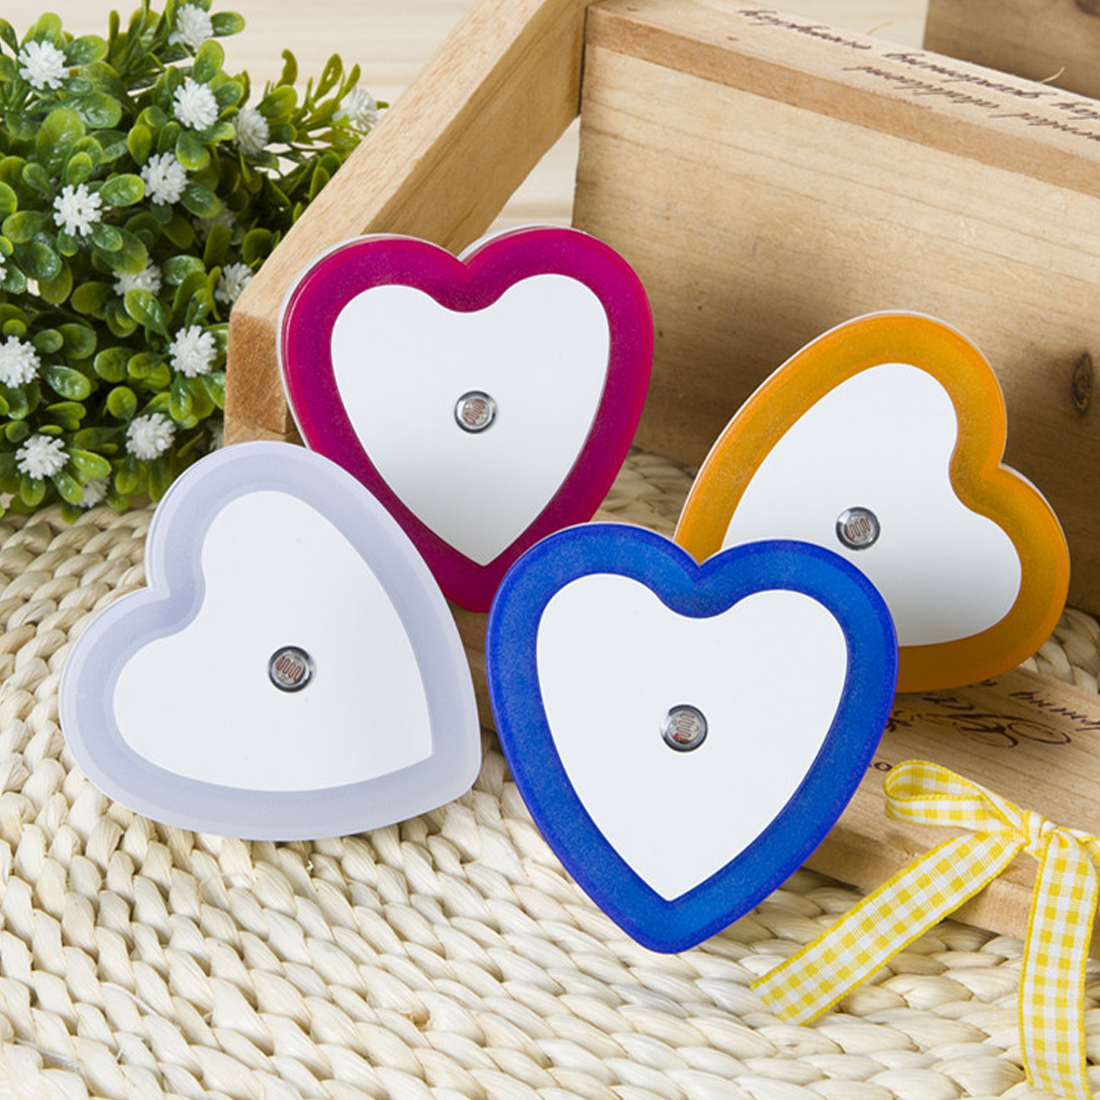 Lovely Heart Light Sensor Control LED Night Light EU Plug Novelty Bedroom Lamp For Baby Kids Gifts Luminaire Sleep LightLovely Heart Light Sensor Control LED Night Light EU Plug Novelty Bedroom Lamp For Baby Kids Gifts Luminaire Sleep Light